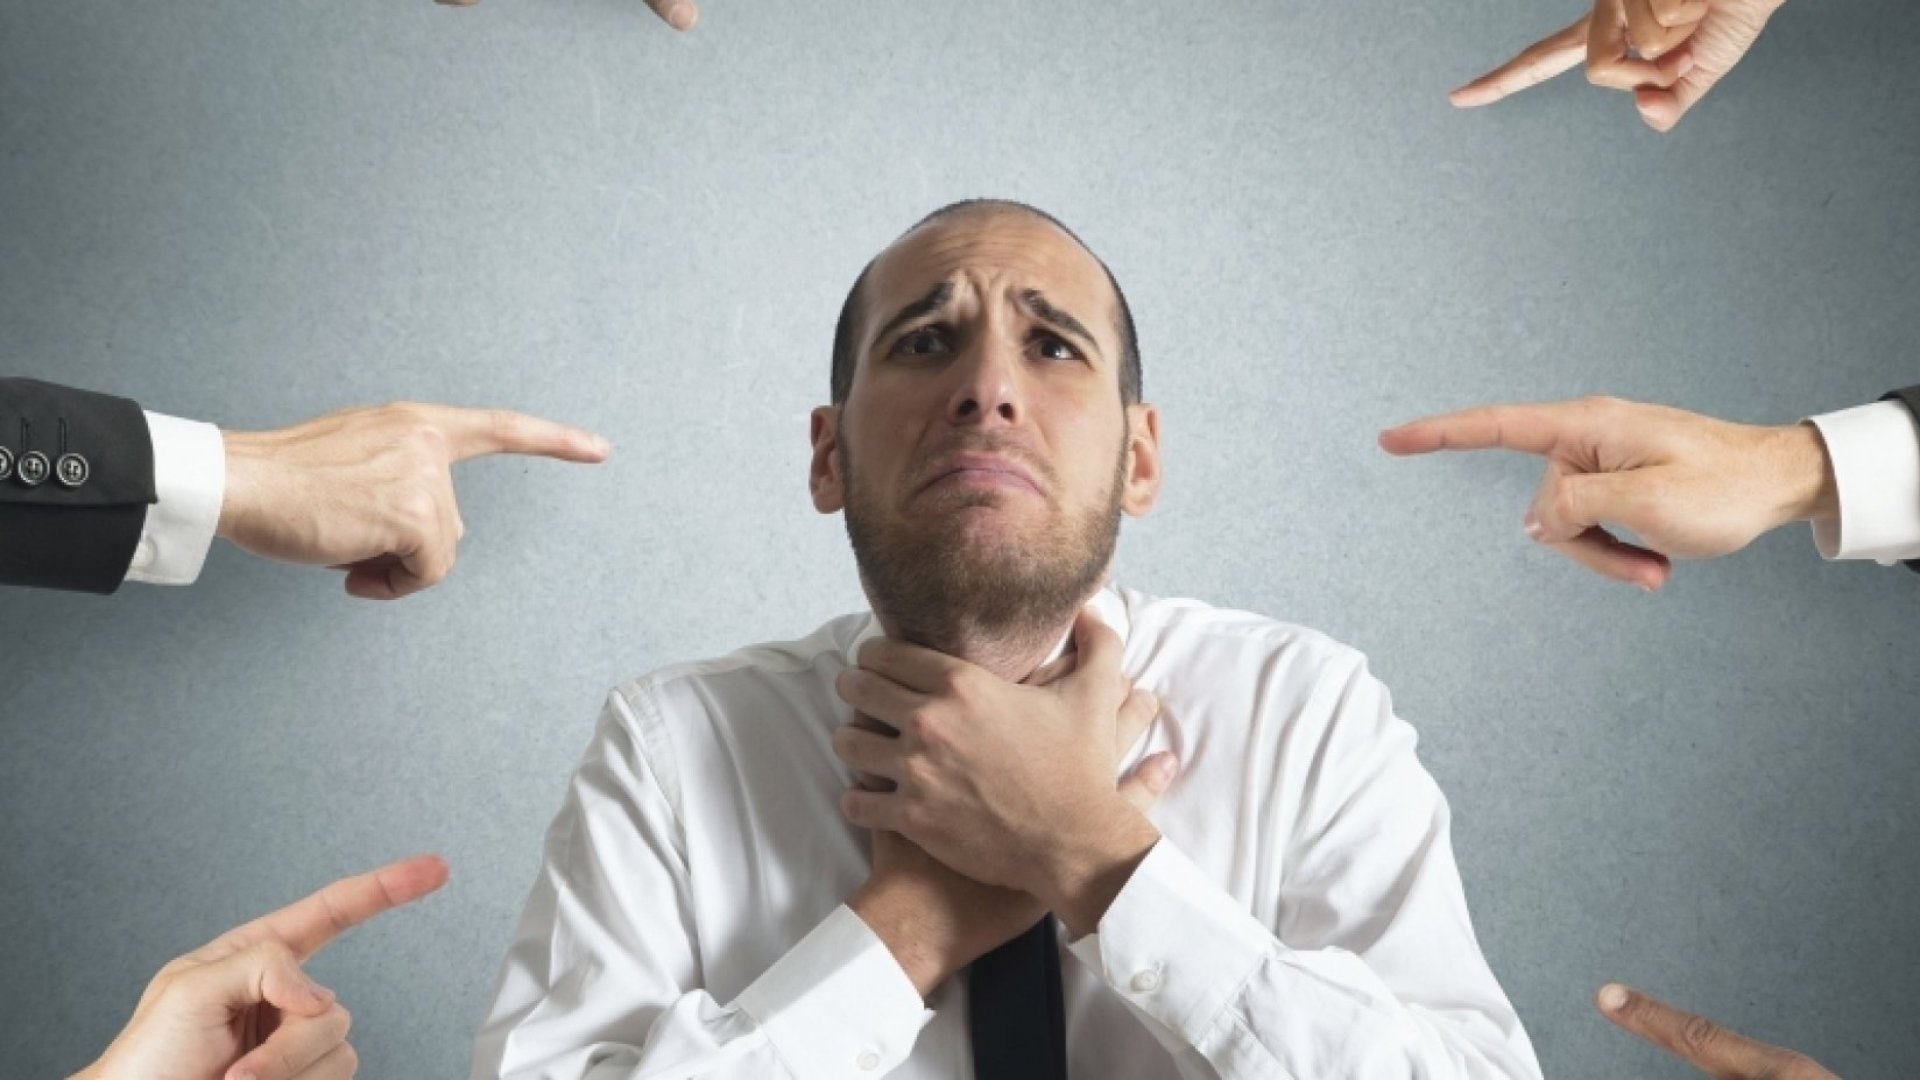 If You Treat Your Suppliers Badly, It Might Just Come Back to Haunt You